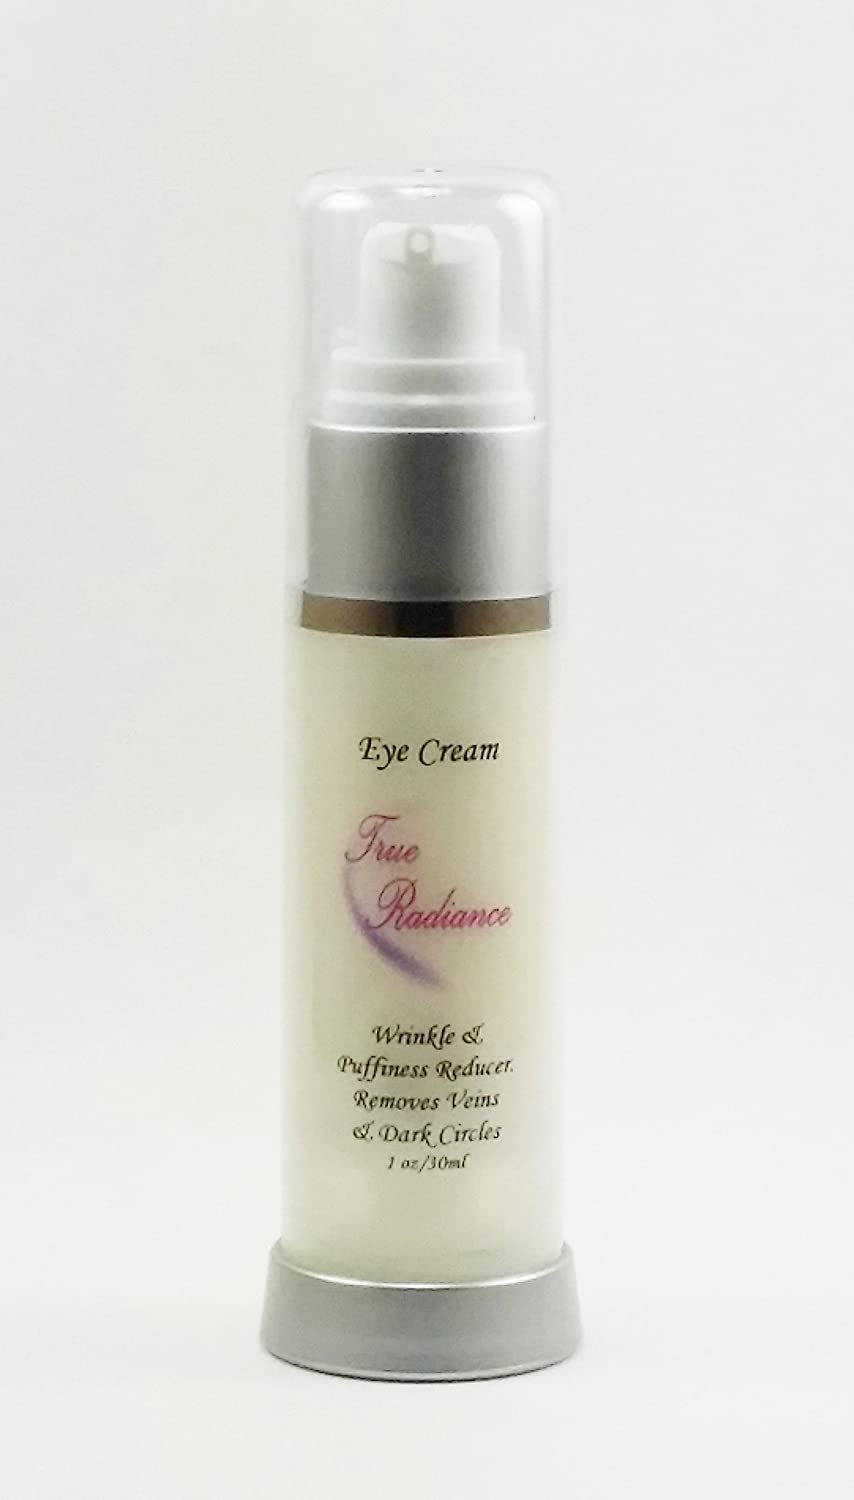 True Radiance Lineless Eye cream removes crows feet, dark circles and Puffiness, fine lines. Anti-aging, anti-wrinkle and more. Also has 10% Reguage, 10% Syncoll, 8% Pepha-tight, DMAE, Glycerin and much more. PARABEN FREE 1 oz eye cream. 1002